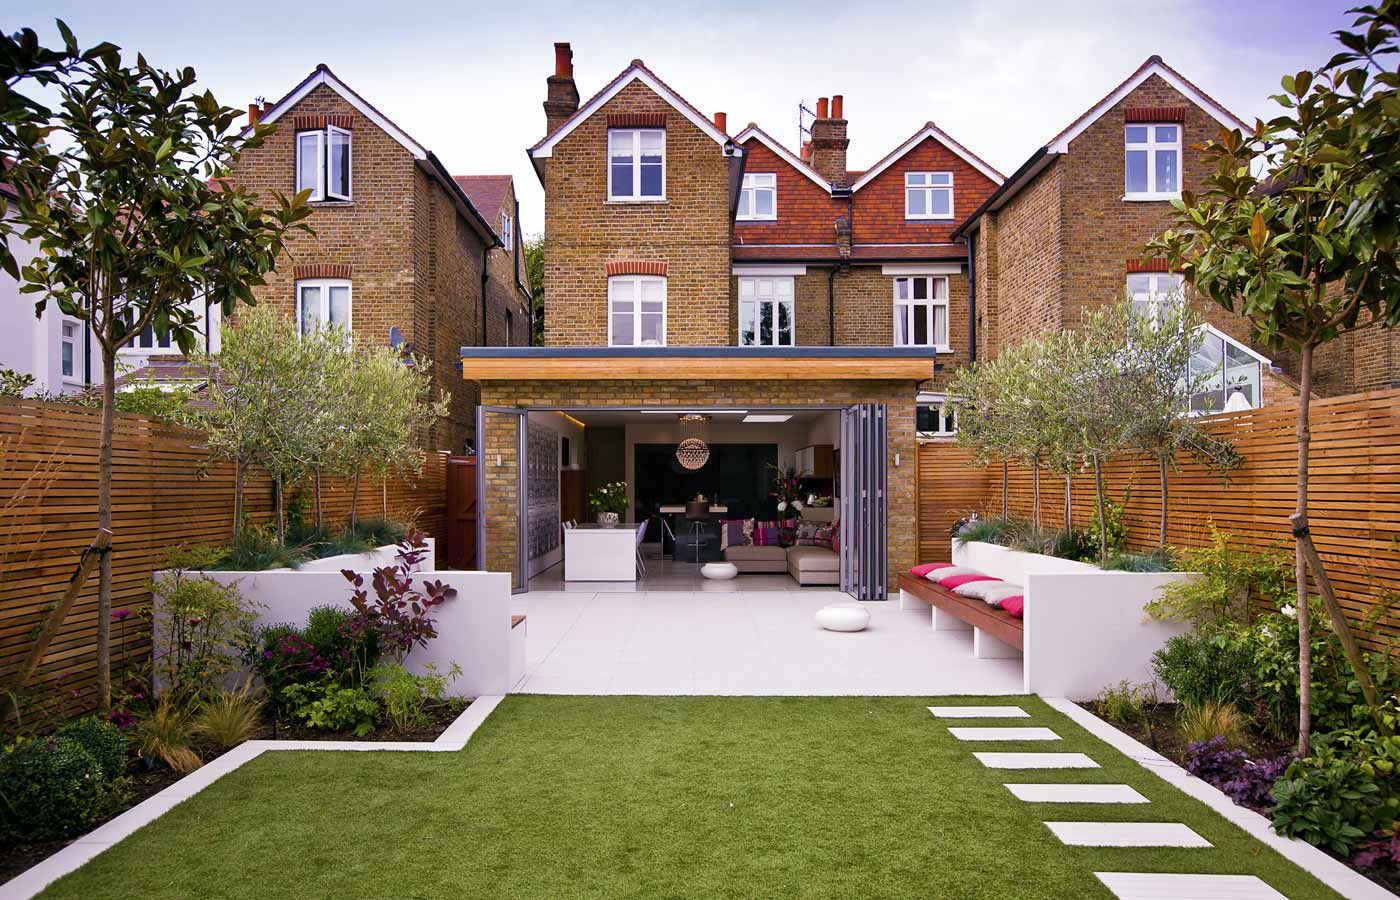 Clean Lines And Low Maintenance Garden In South London | Garlands, Gardens  And Designers